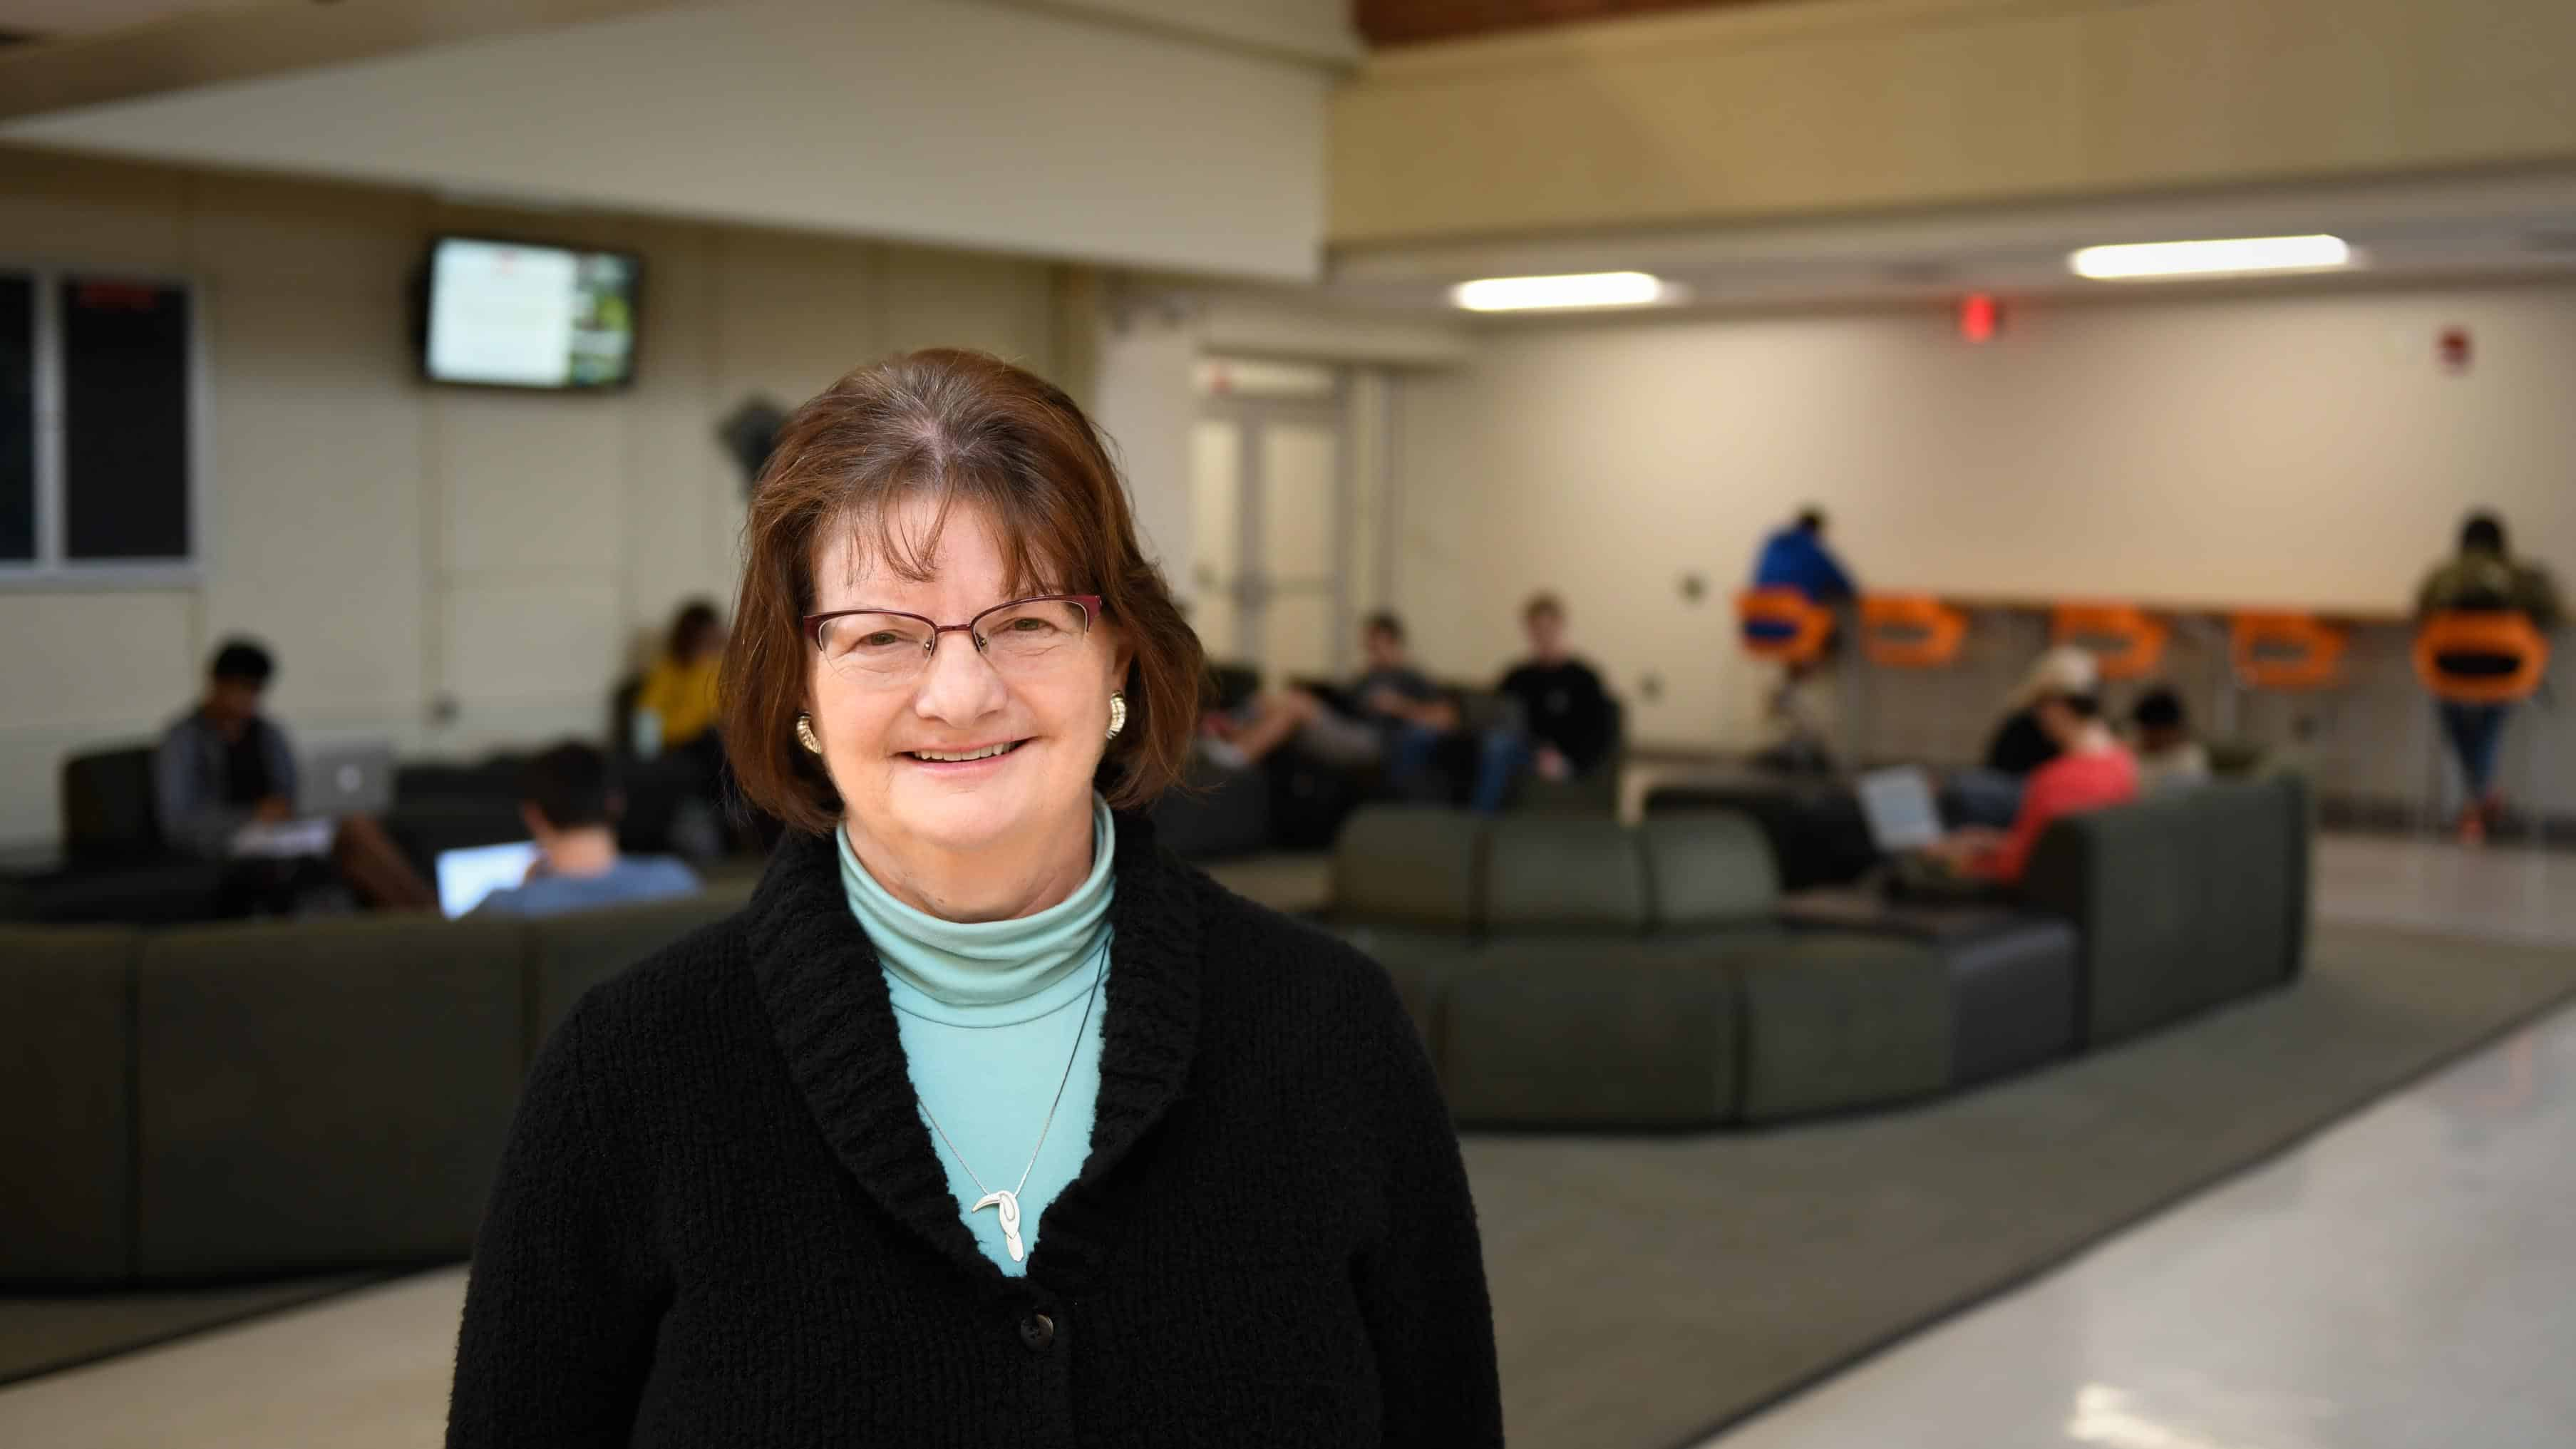 Statistics alumna Nancy Ridenhour in the commons area in Cox Hall with students working in the background